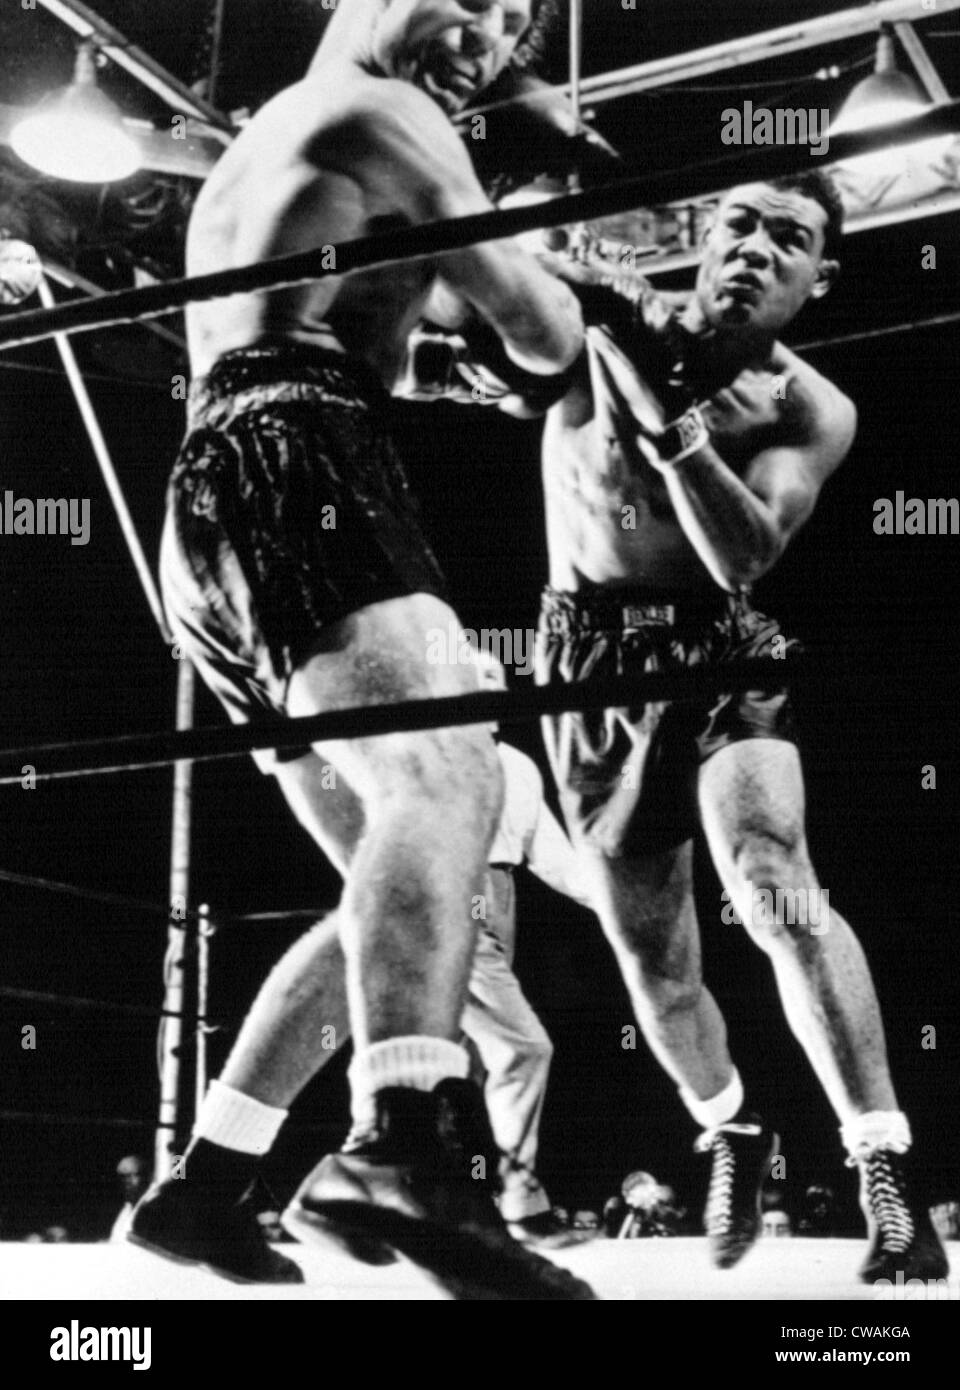 JOE LOUIS delivers knockout punch to Lou Nova, Yankee Stadium 06/41. Courtesy: CSU Archives / Everett Collection - Stock Image